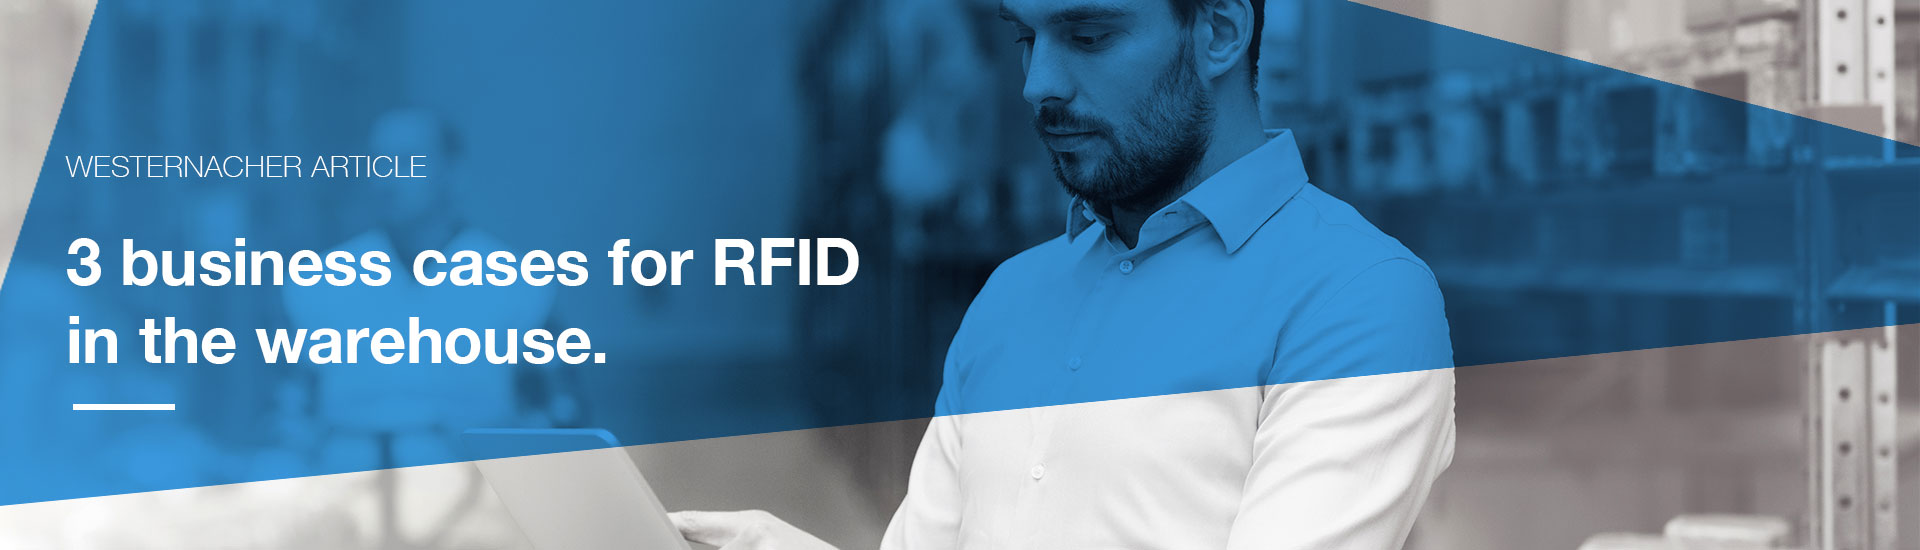 3 business cases for RFID in the warehouse | westernacher-consulting.com